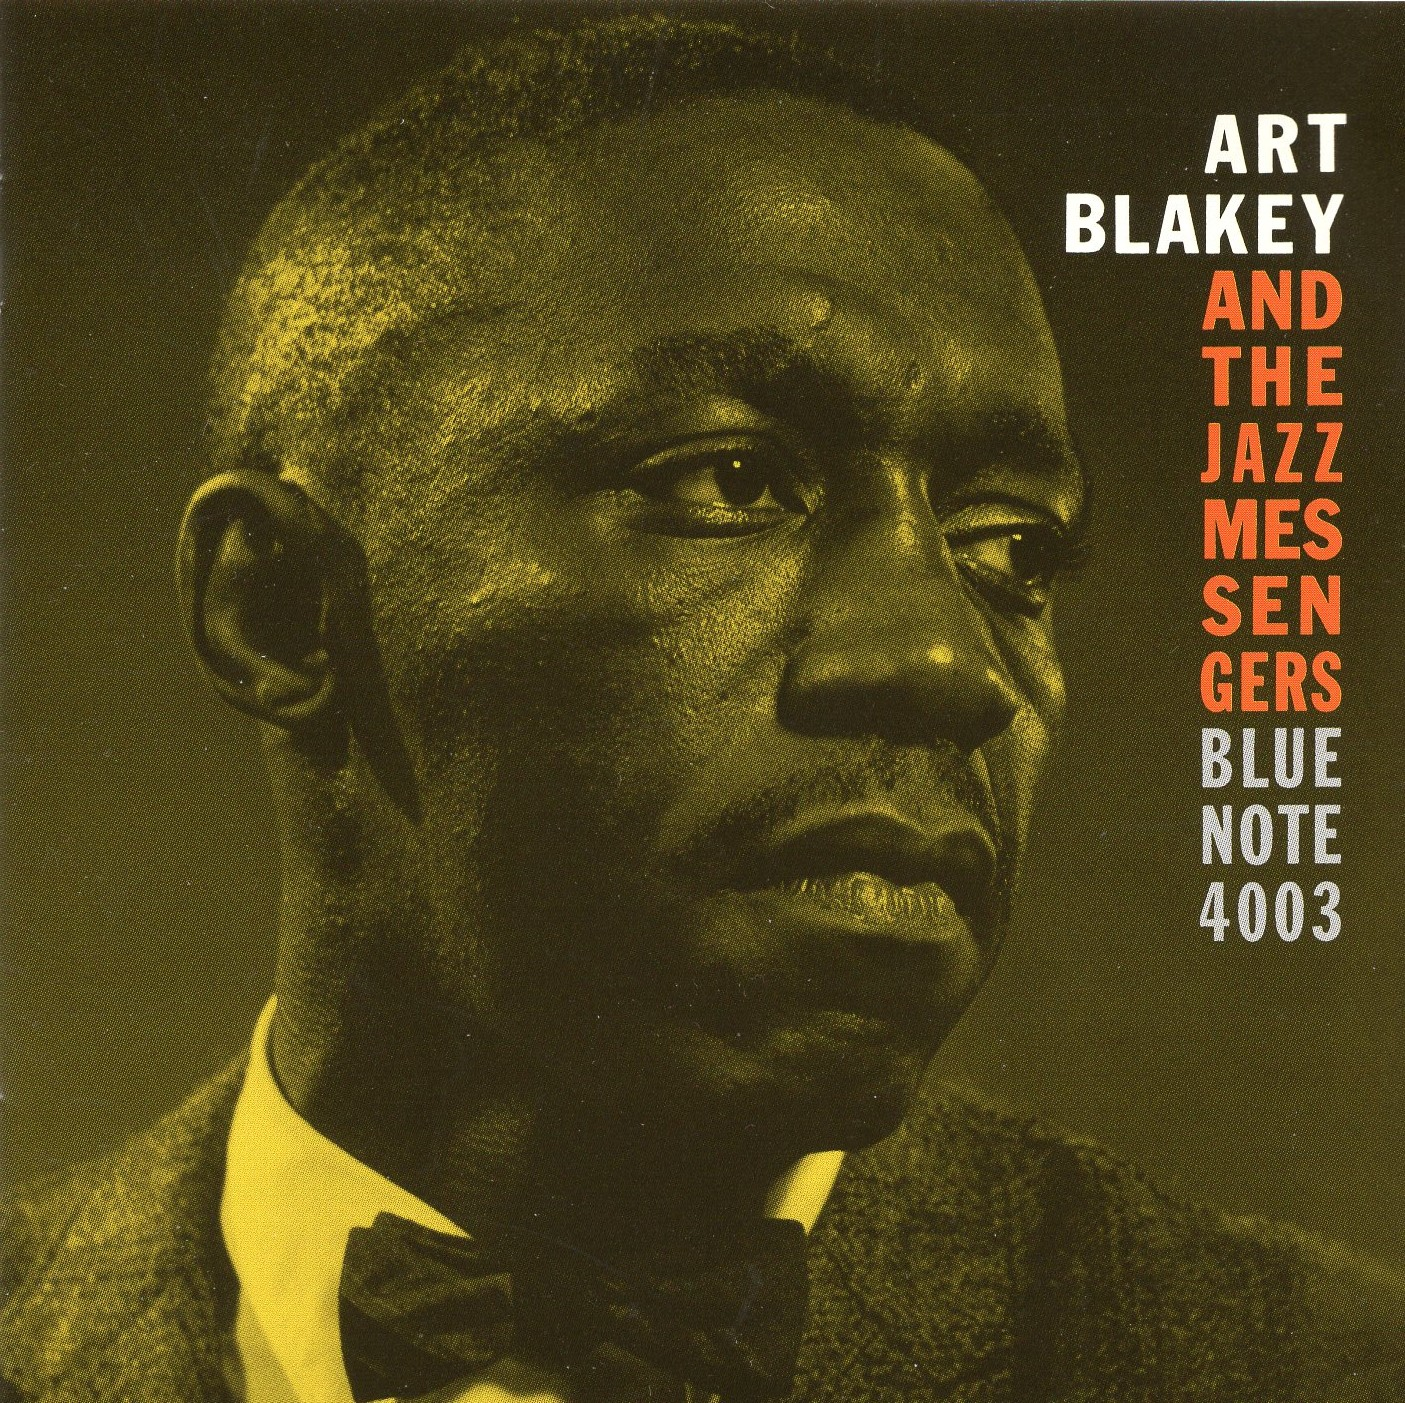 """Art Blakey and The Jazz Messengers Blue Note 4003"" Art Blakey"